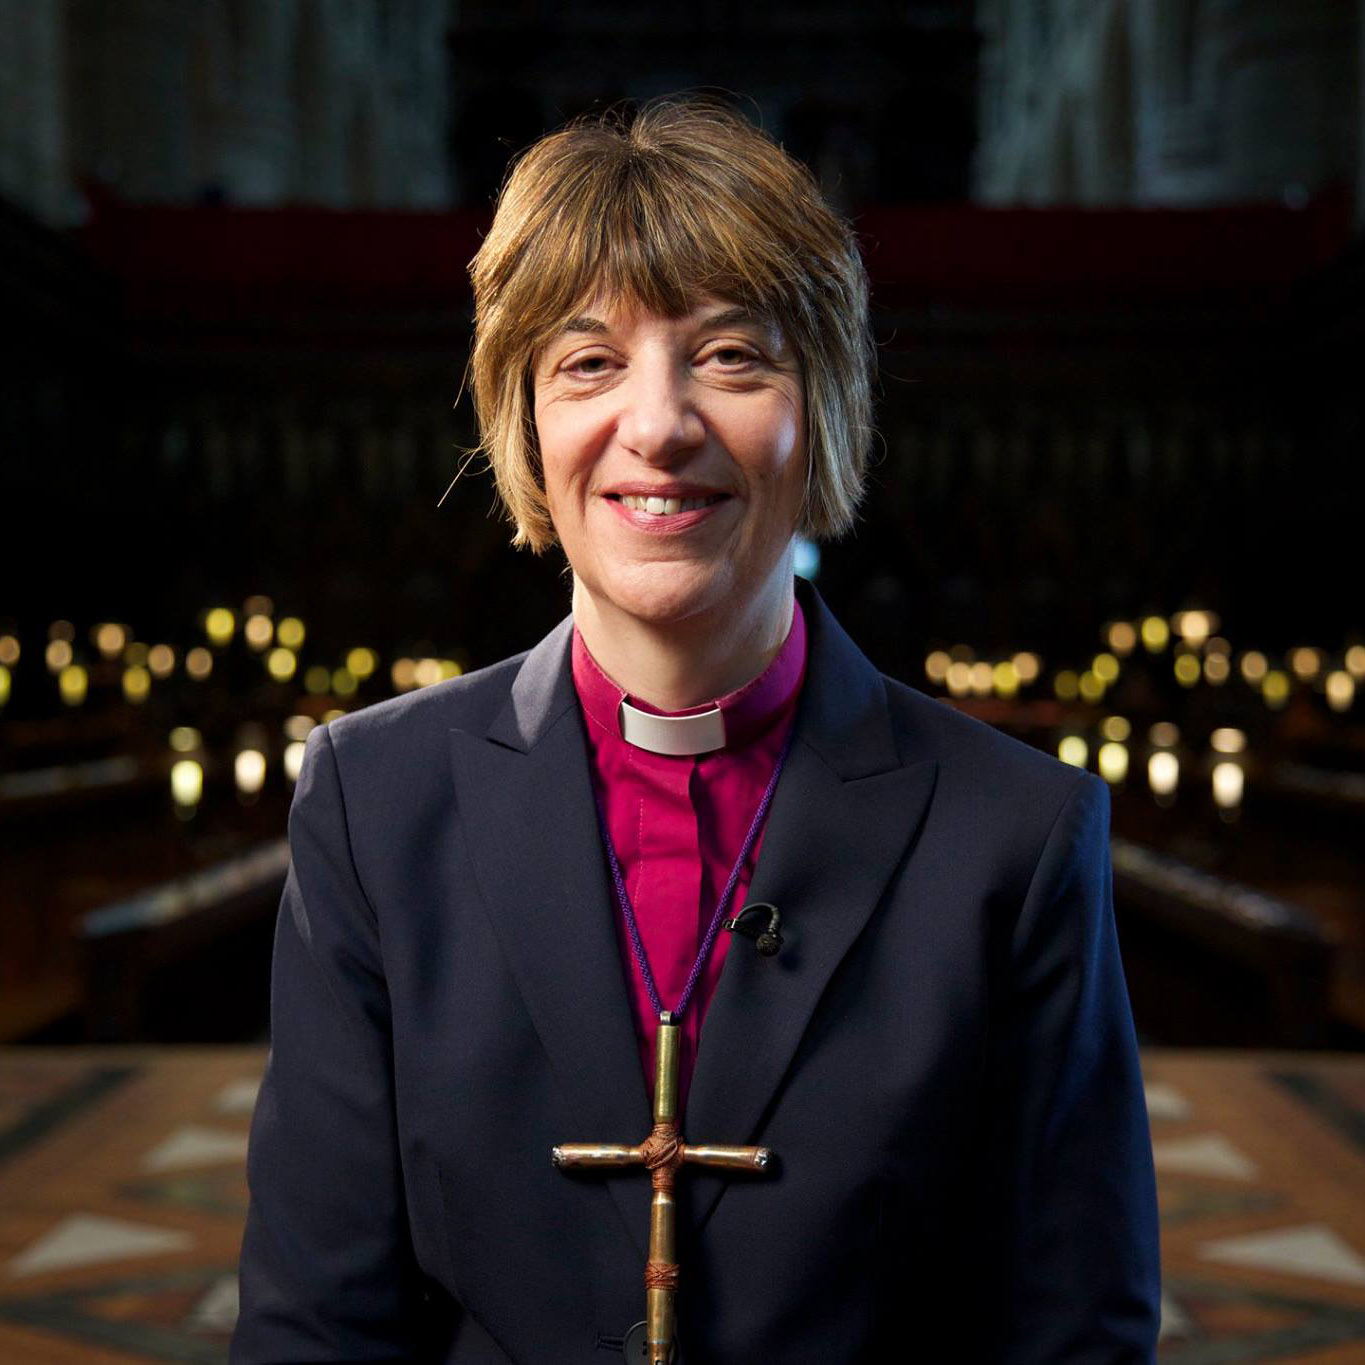 Rt Revd Bishop Rachel Treweek